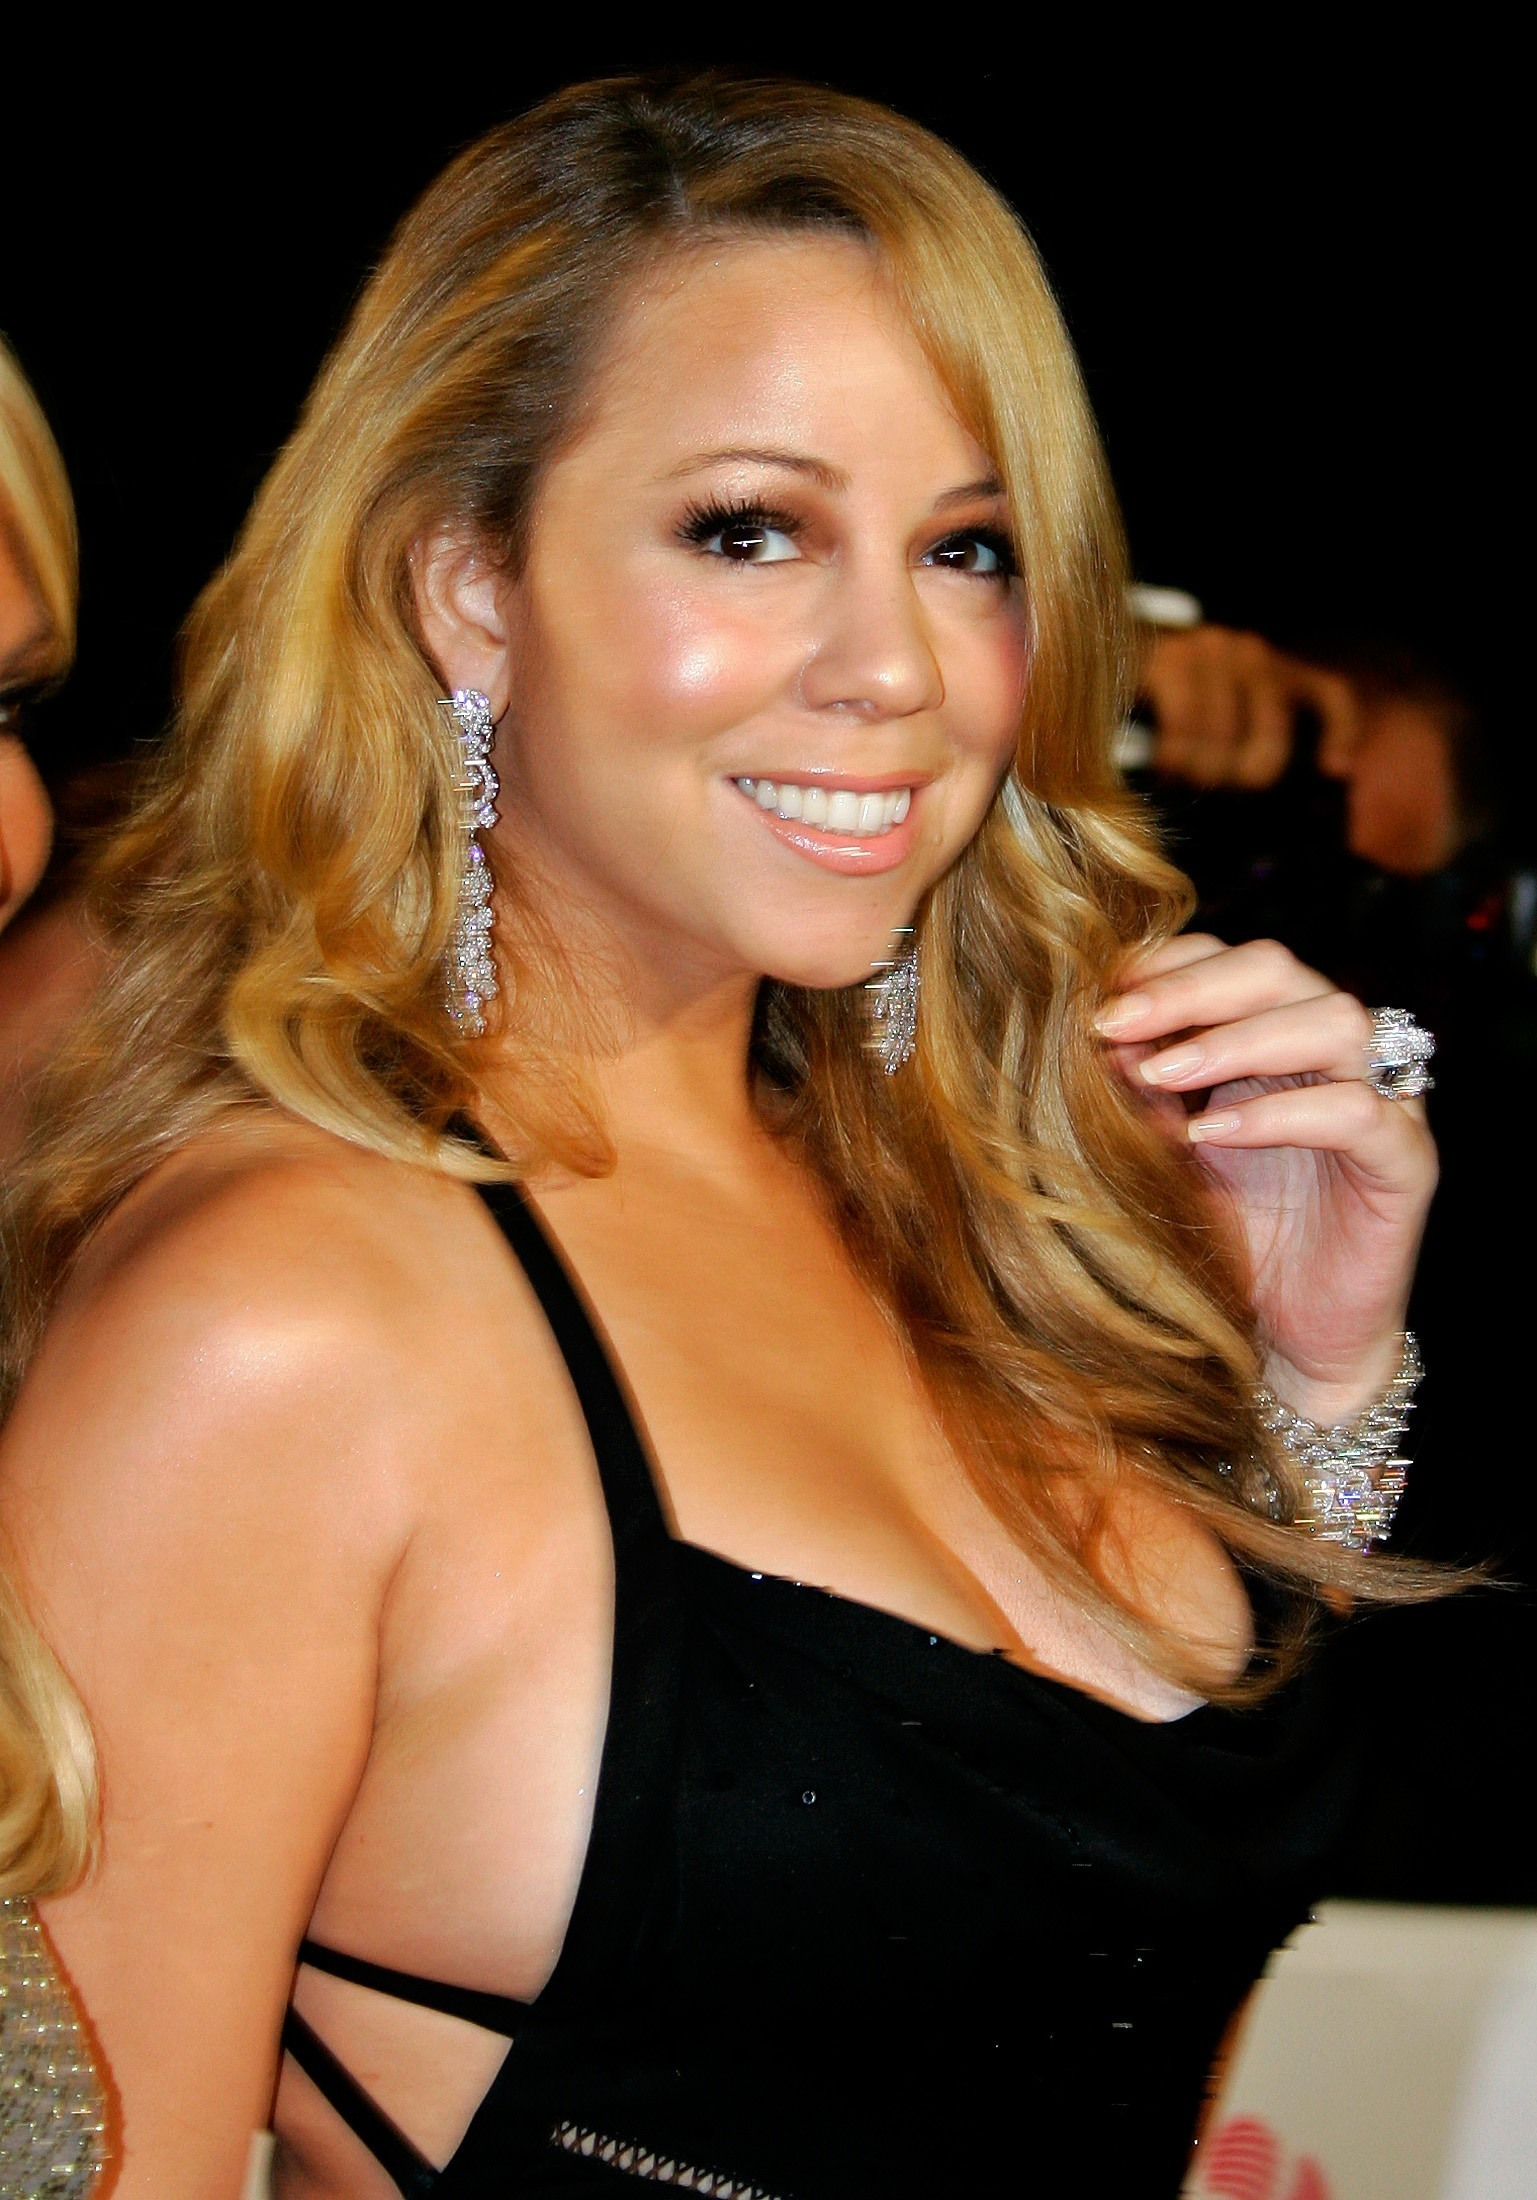 Mariah Carey enseña los pechotes por accidente en